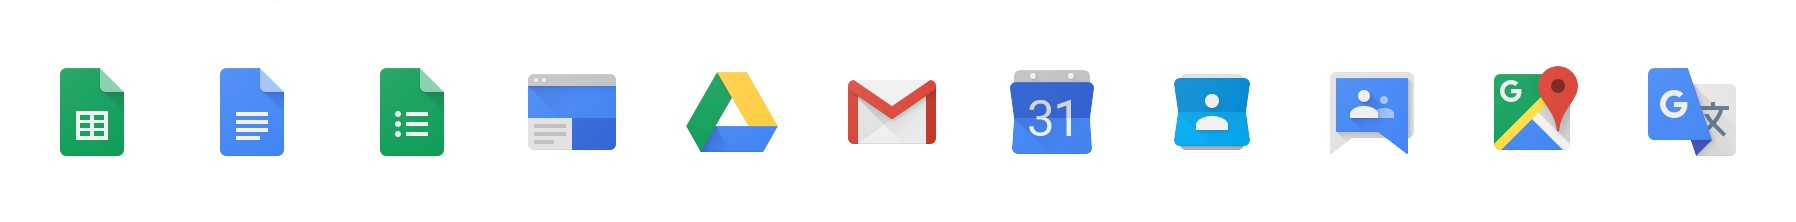 Icons of Google Apps